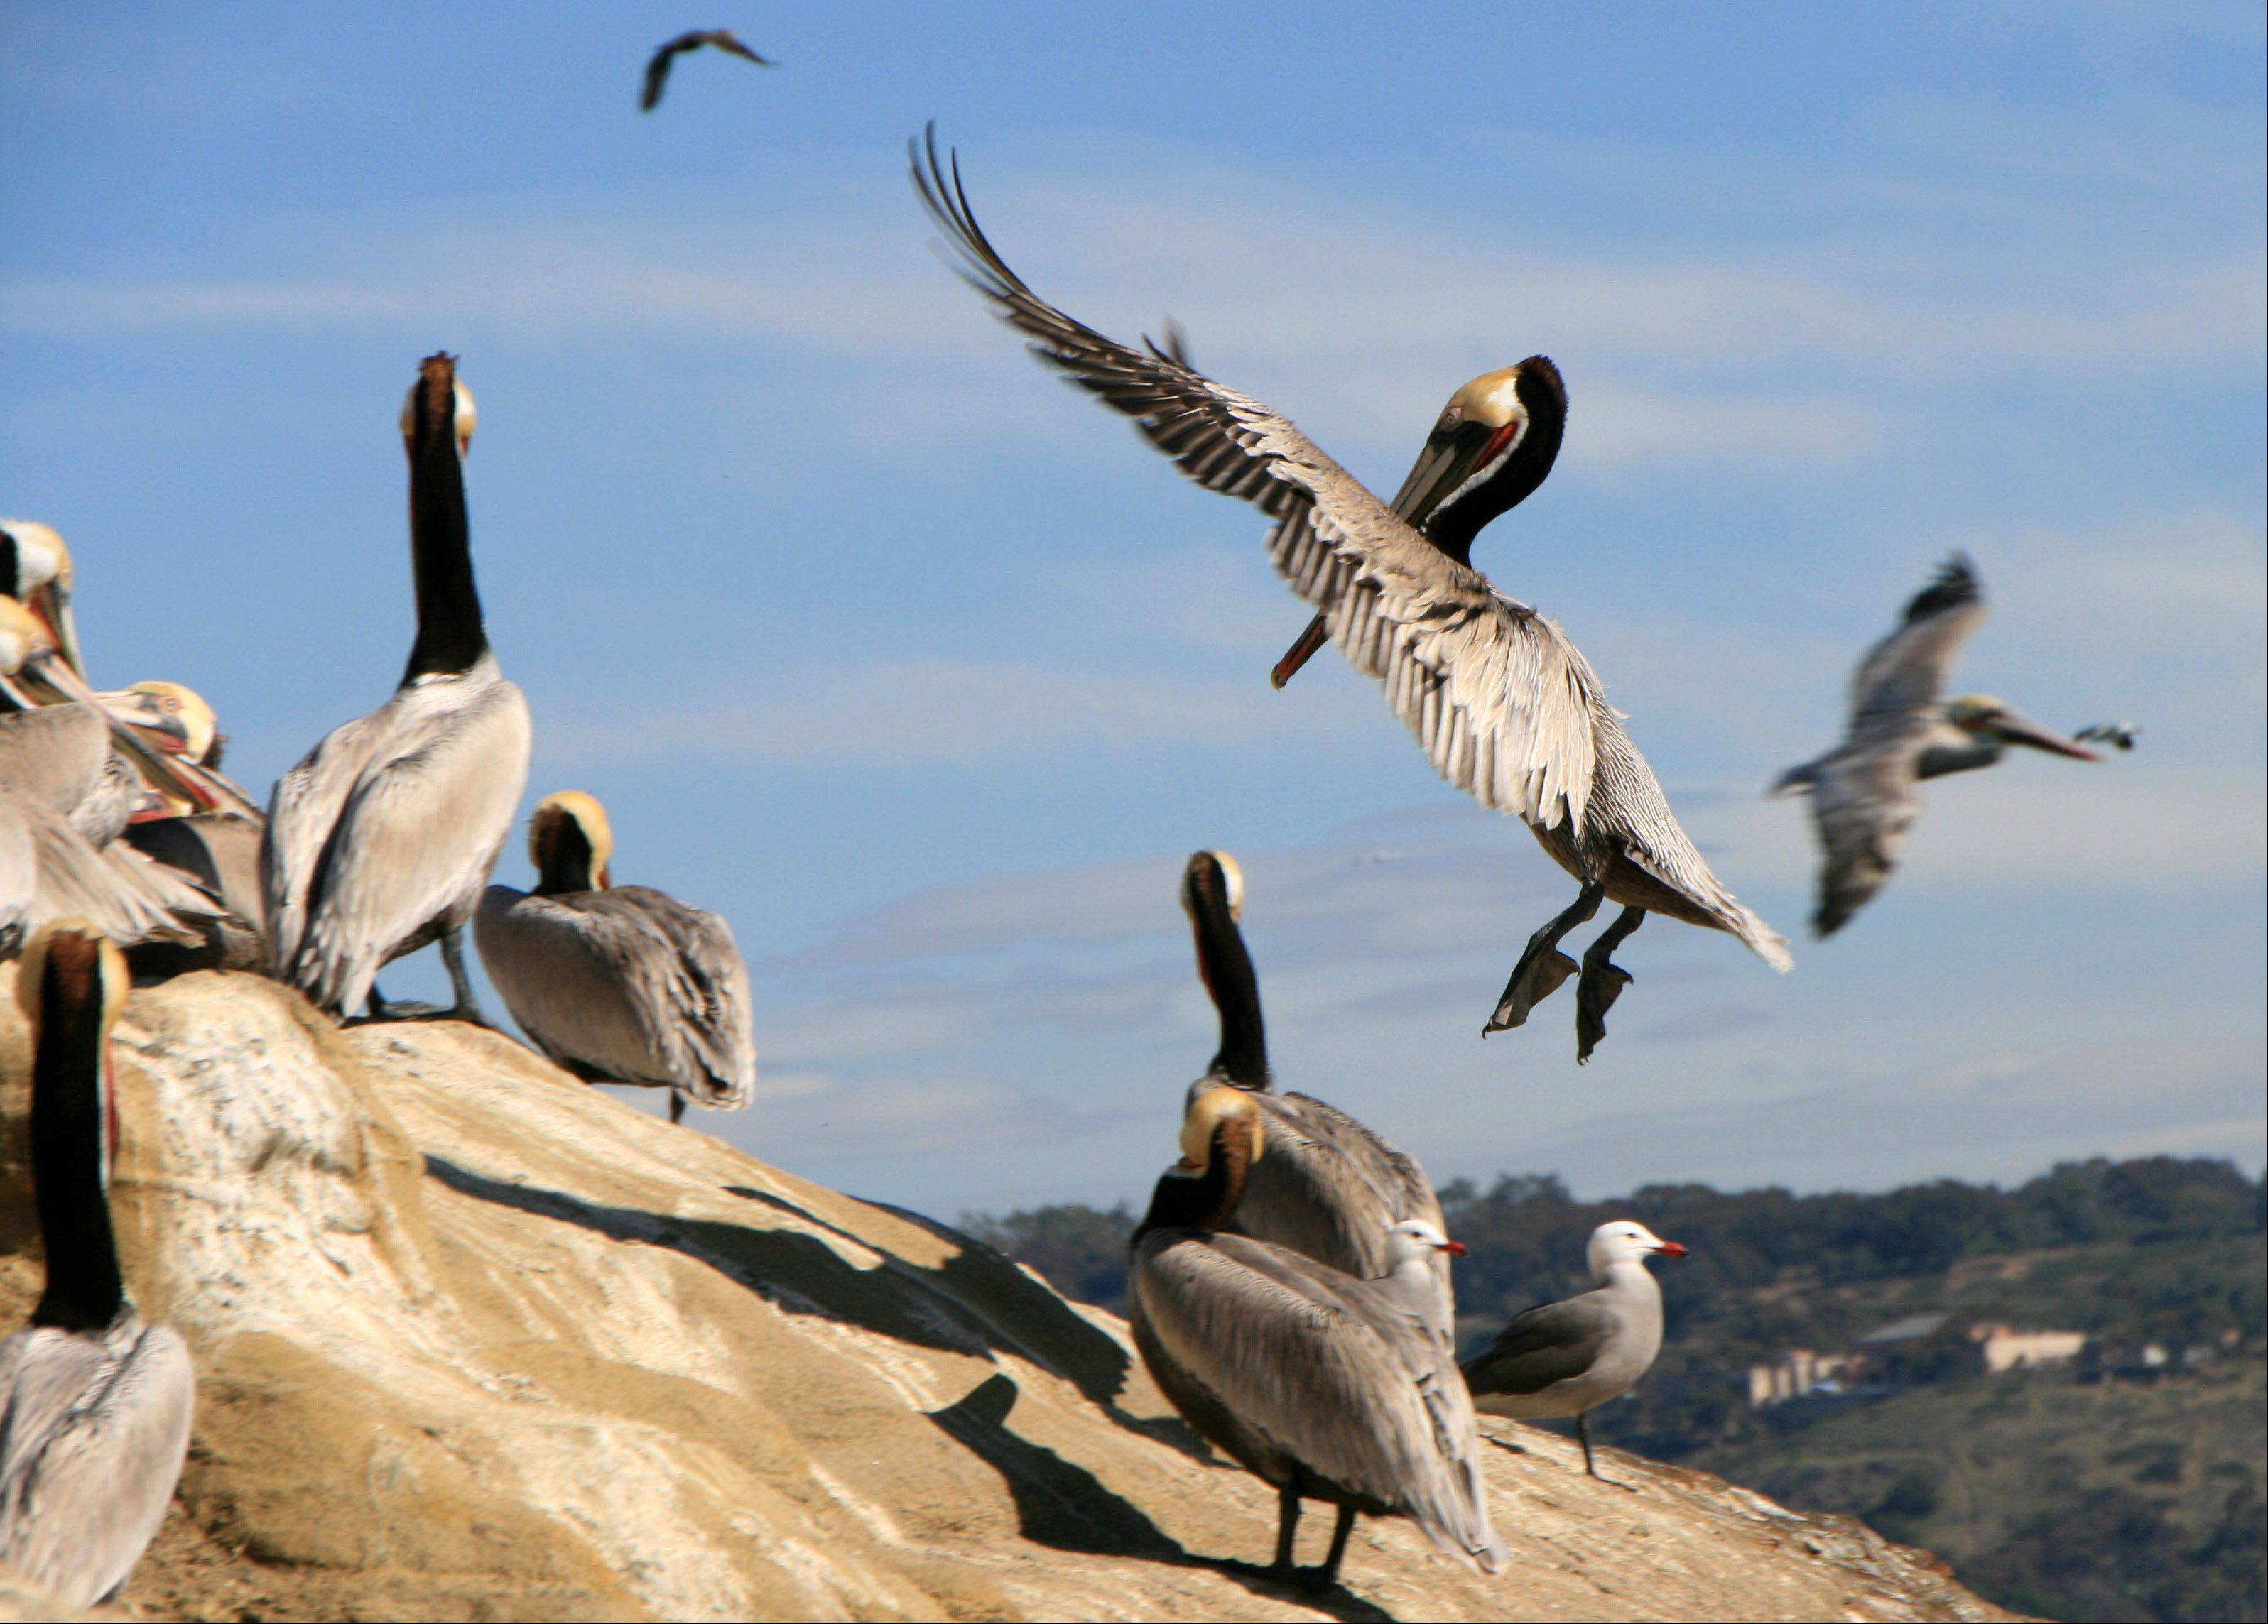 This photo was taken last year in La Hoya, California where hundreds of brown pelicans fished along the shoreline. The constant comings and goings was just a wonderful sight.